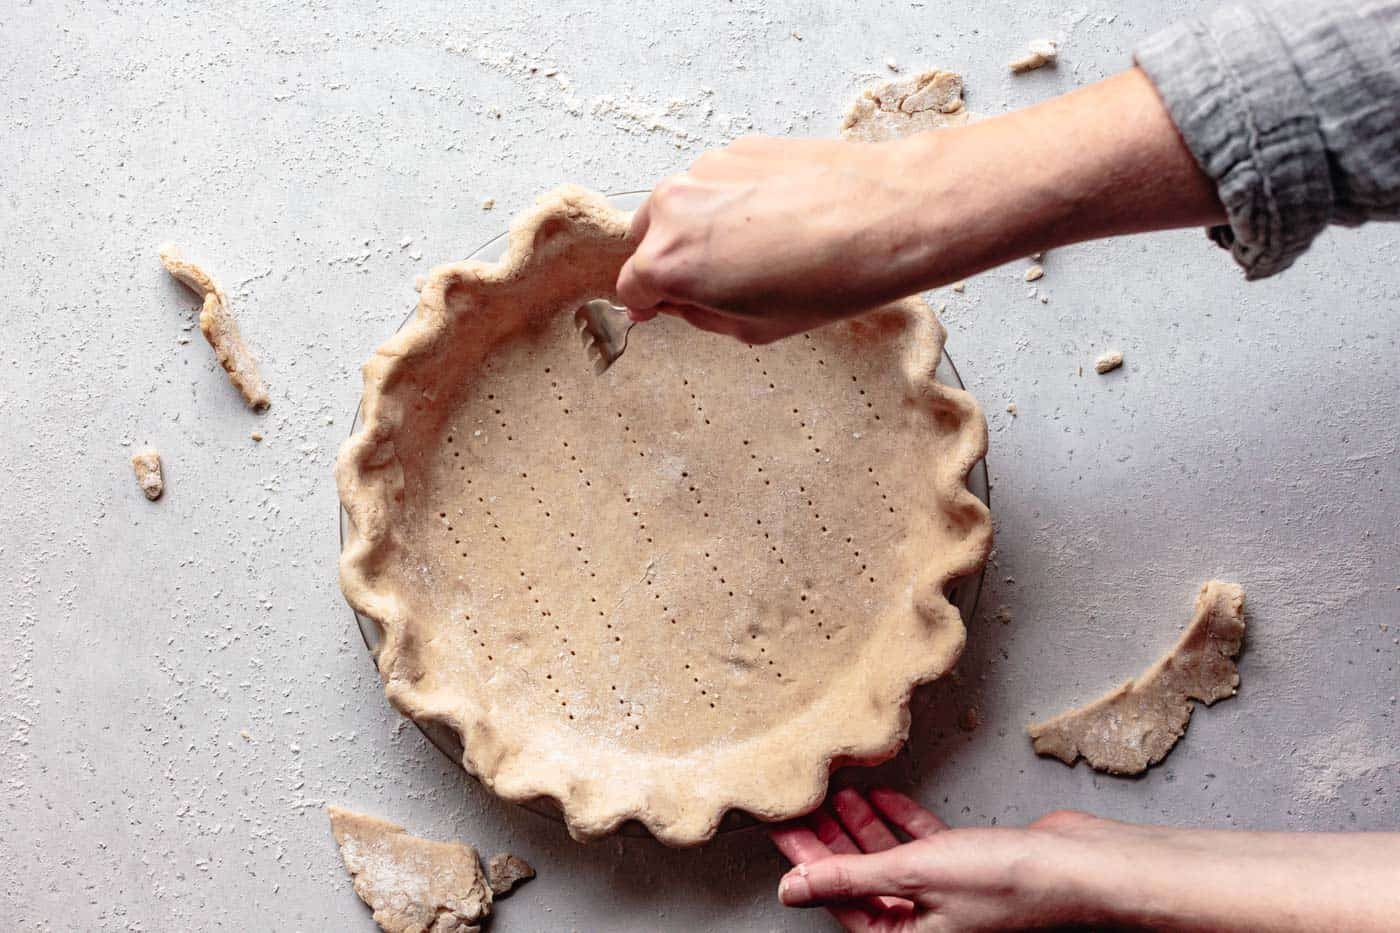 docking the pie crust with a fork